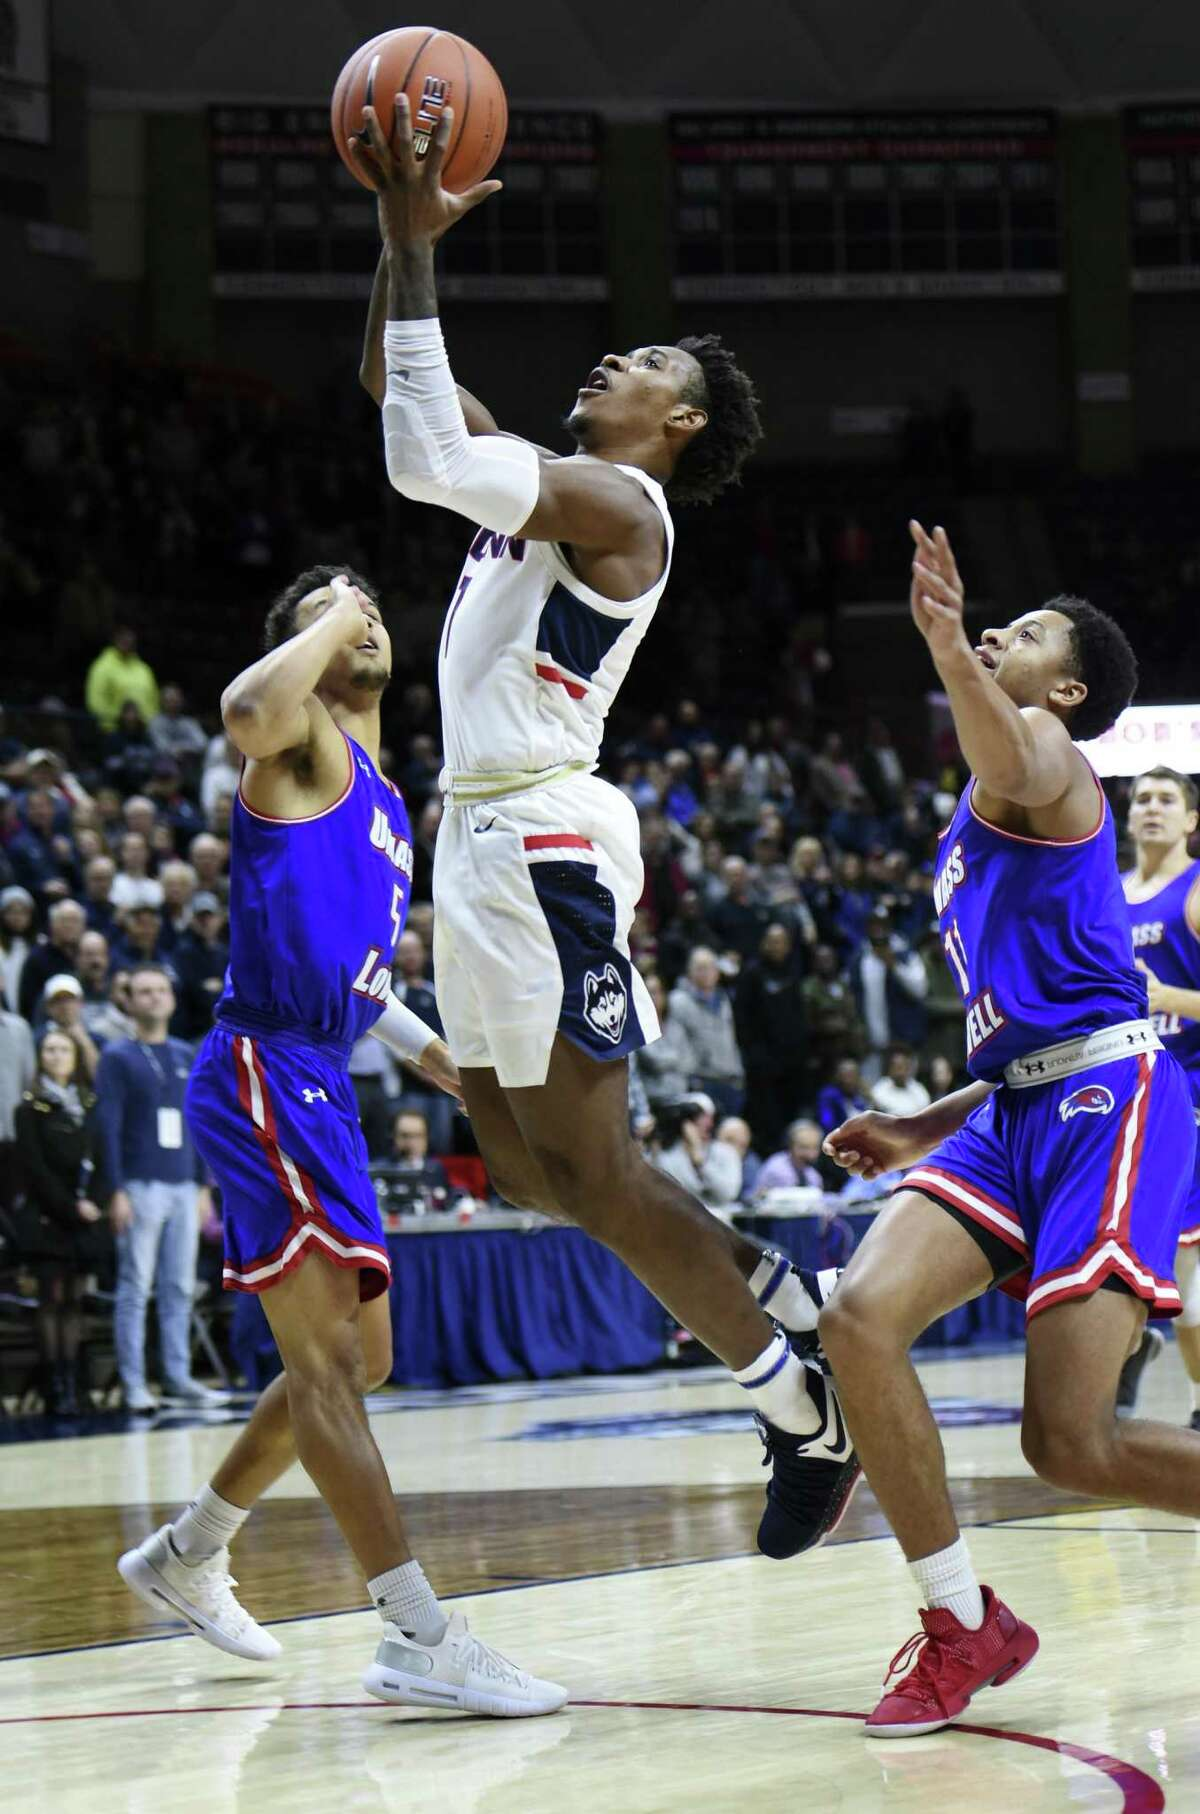 UConn's Christian Vital (1) goes up for two of his 17 points in the first half during an NCAA college basketball game against UMass-Lowell, Tuesday, Nov. 27, 2018, in Storrs, Conn. (AP Photo/Stephen Dunn)